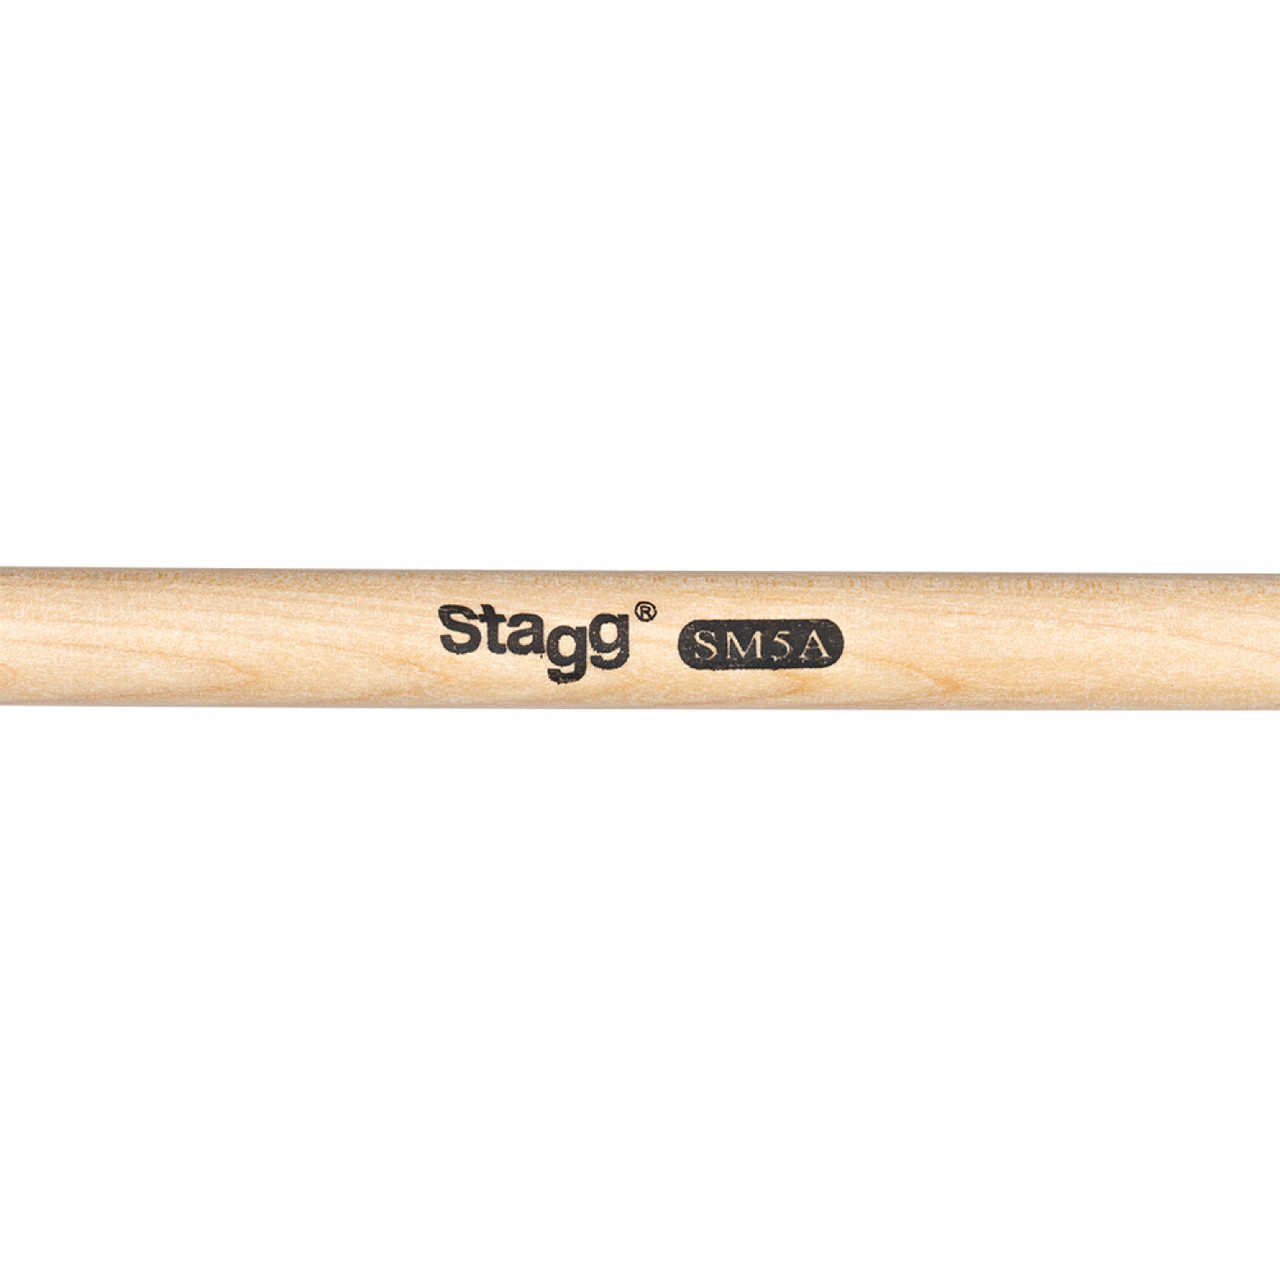 Stagg Sm5a 1 Pair Maple Drum Sticks Wood Tip 5a Murphy S Music